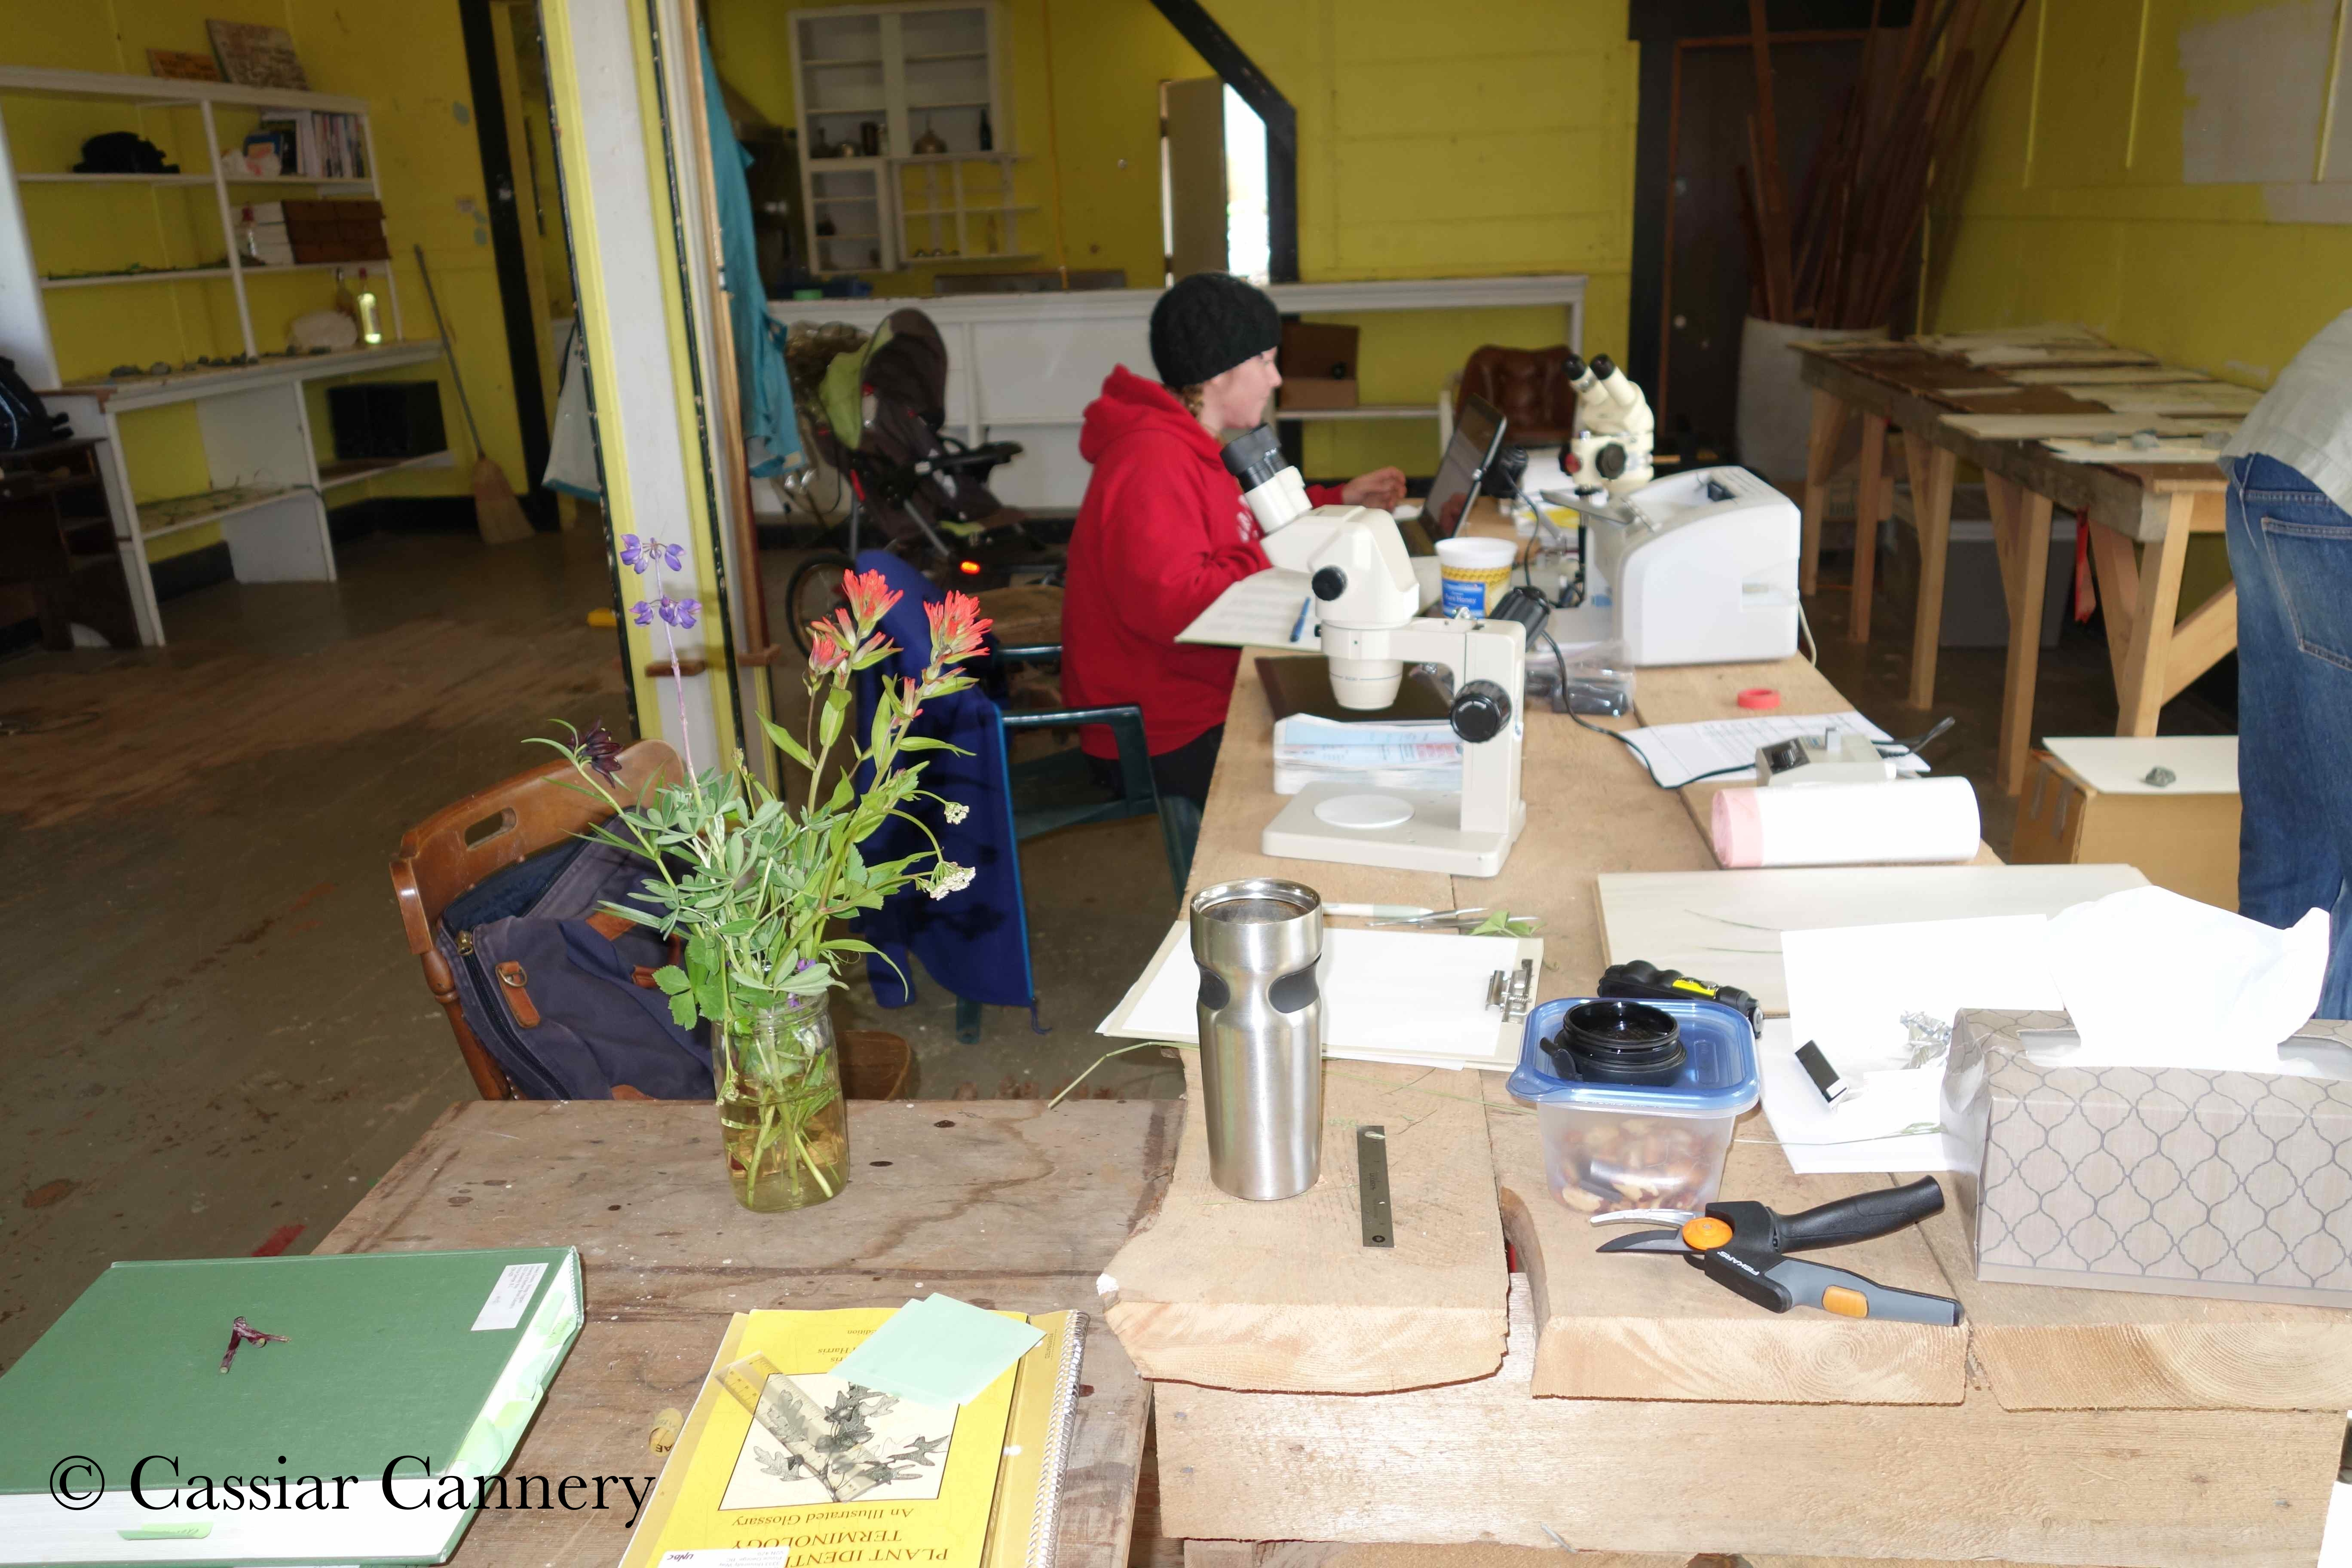 Cassiar Cannery - 2014 Botany Research